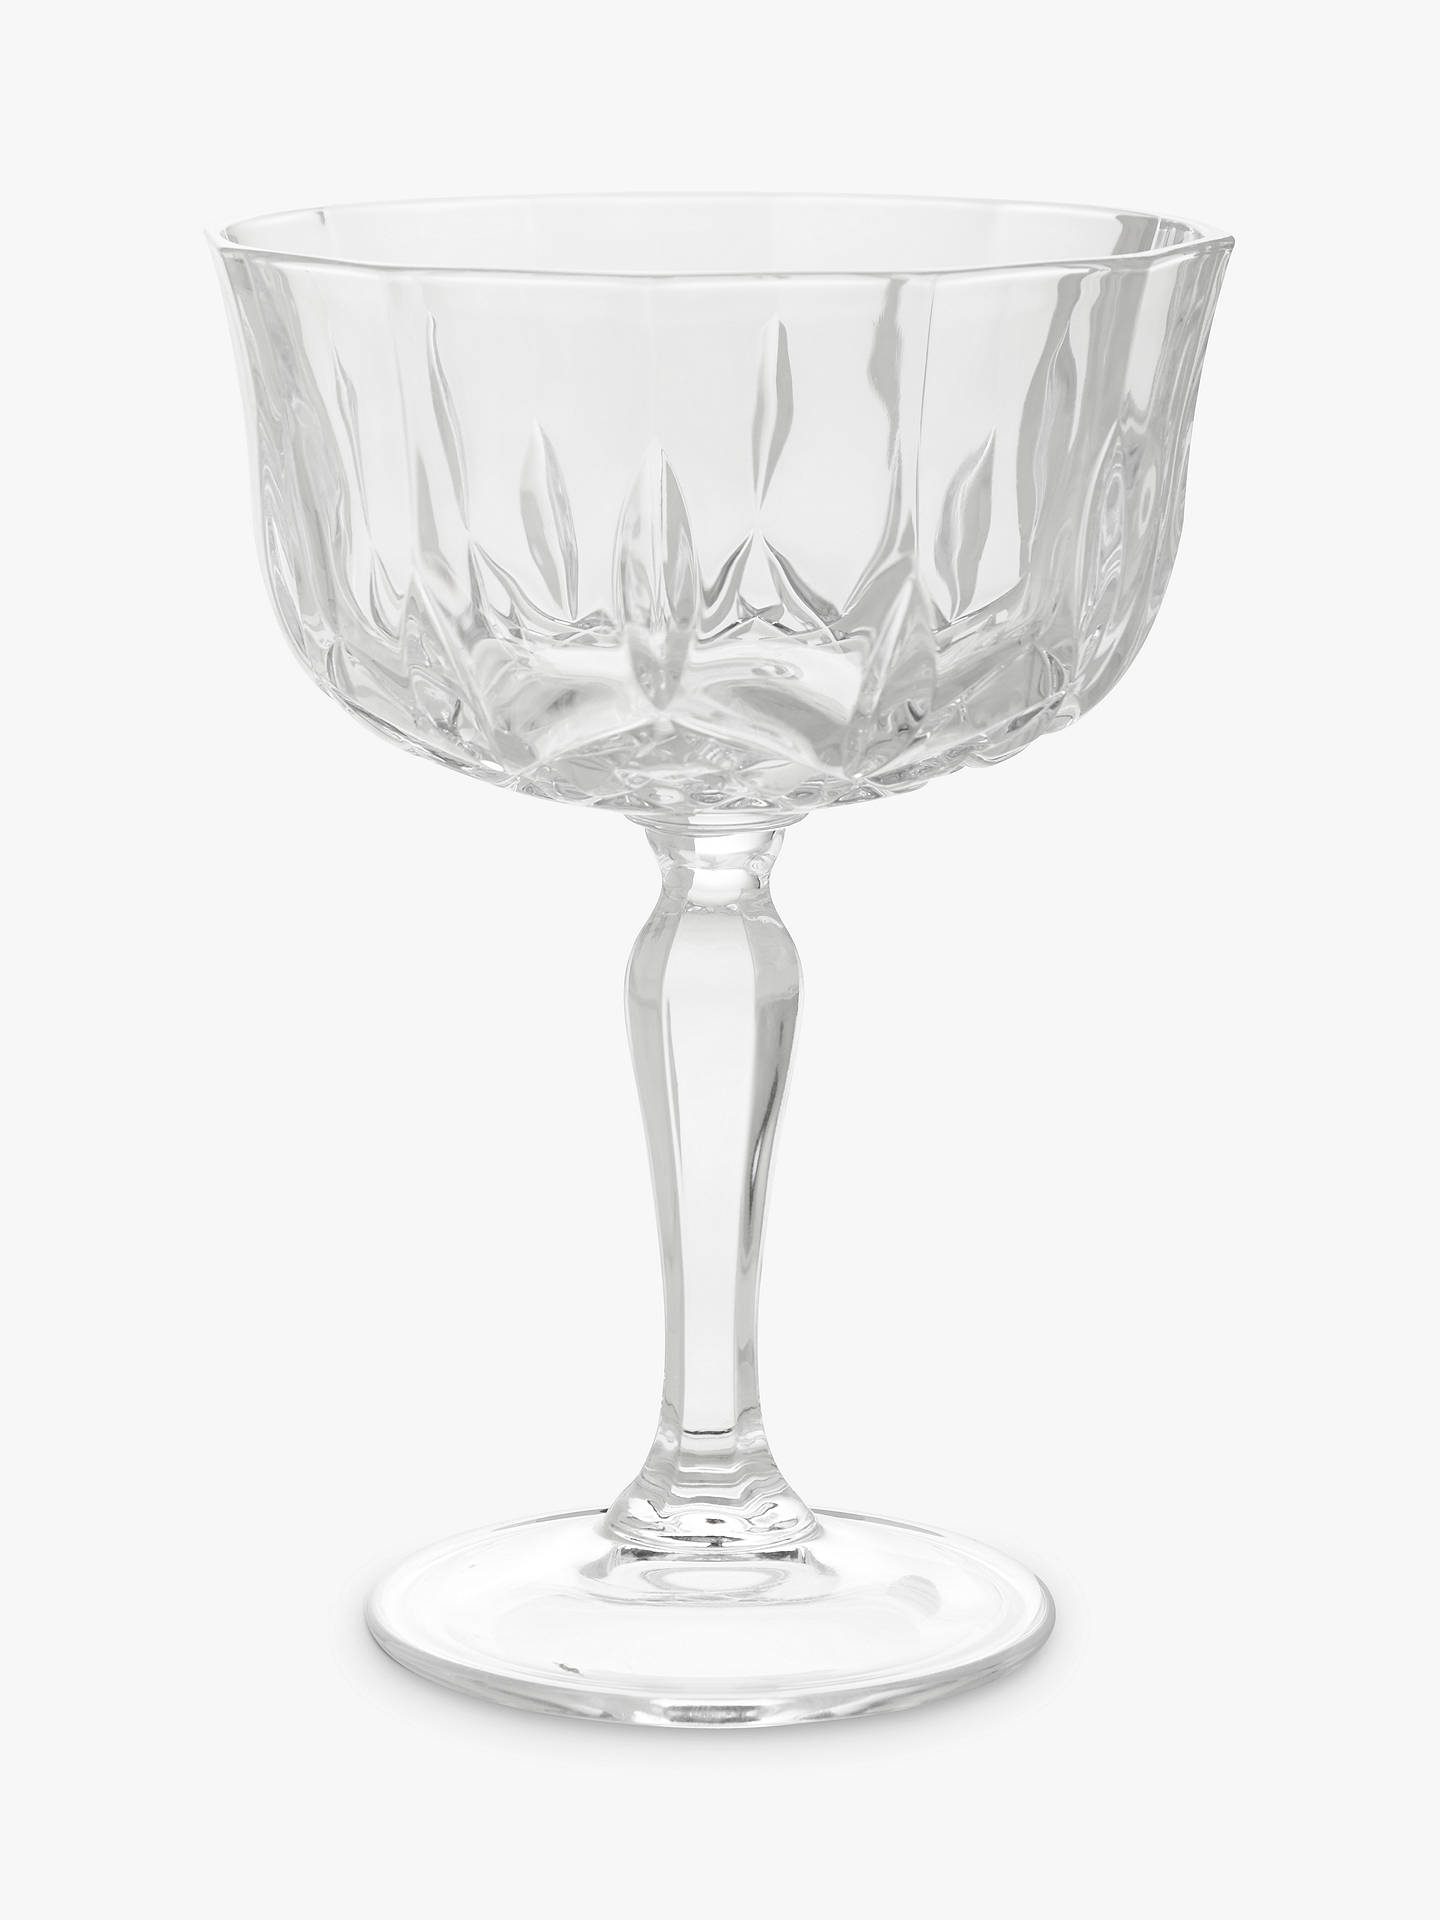 BuyJohn Lewis & Partners Paloma Crystal Glass Cocktail Coupe, 220ml, Clear Online at johnlewis.com